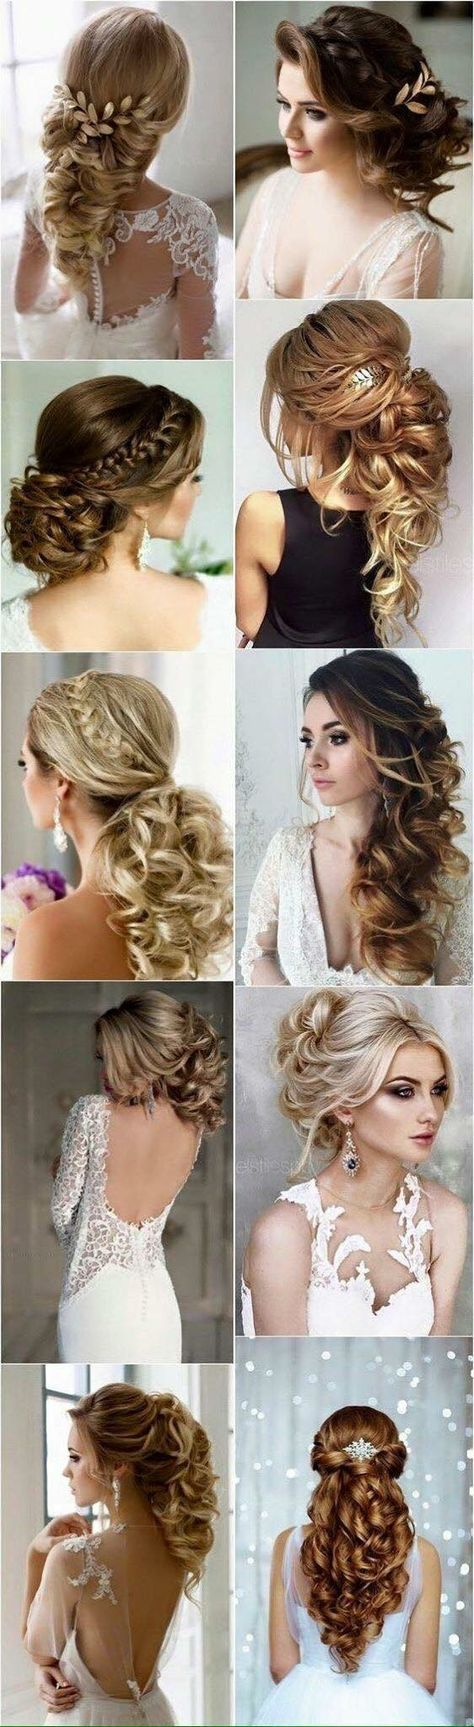 Hairstyles I may want to try